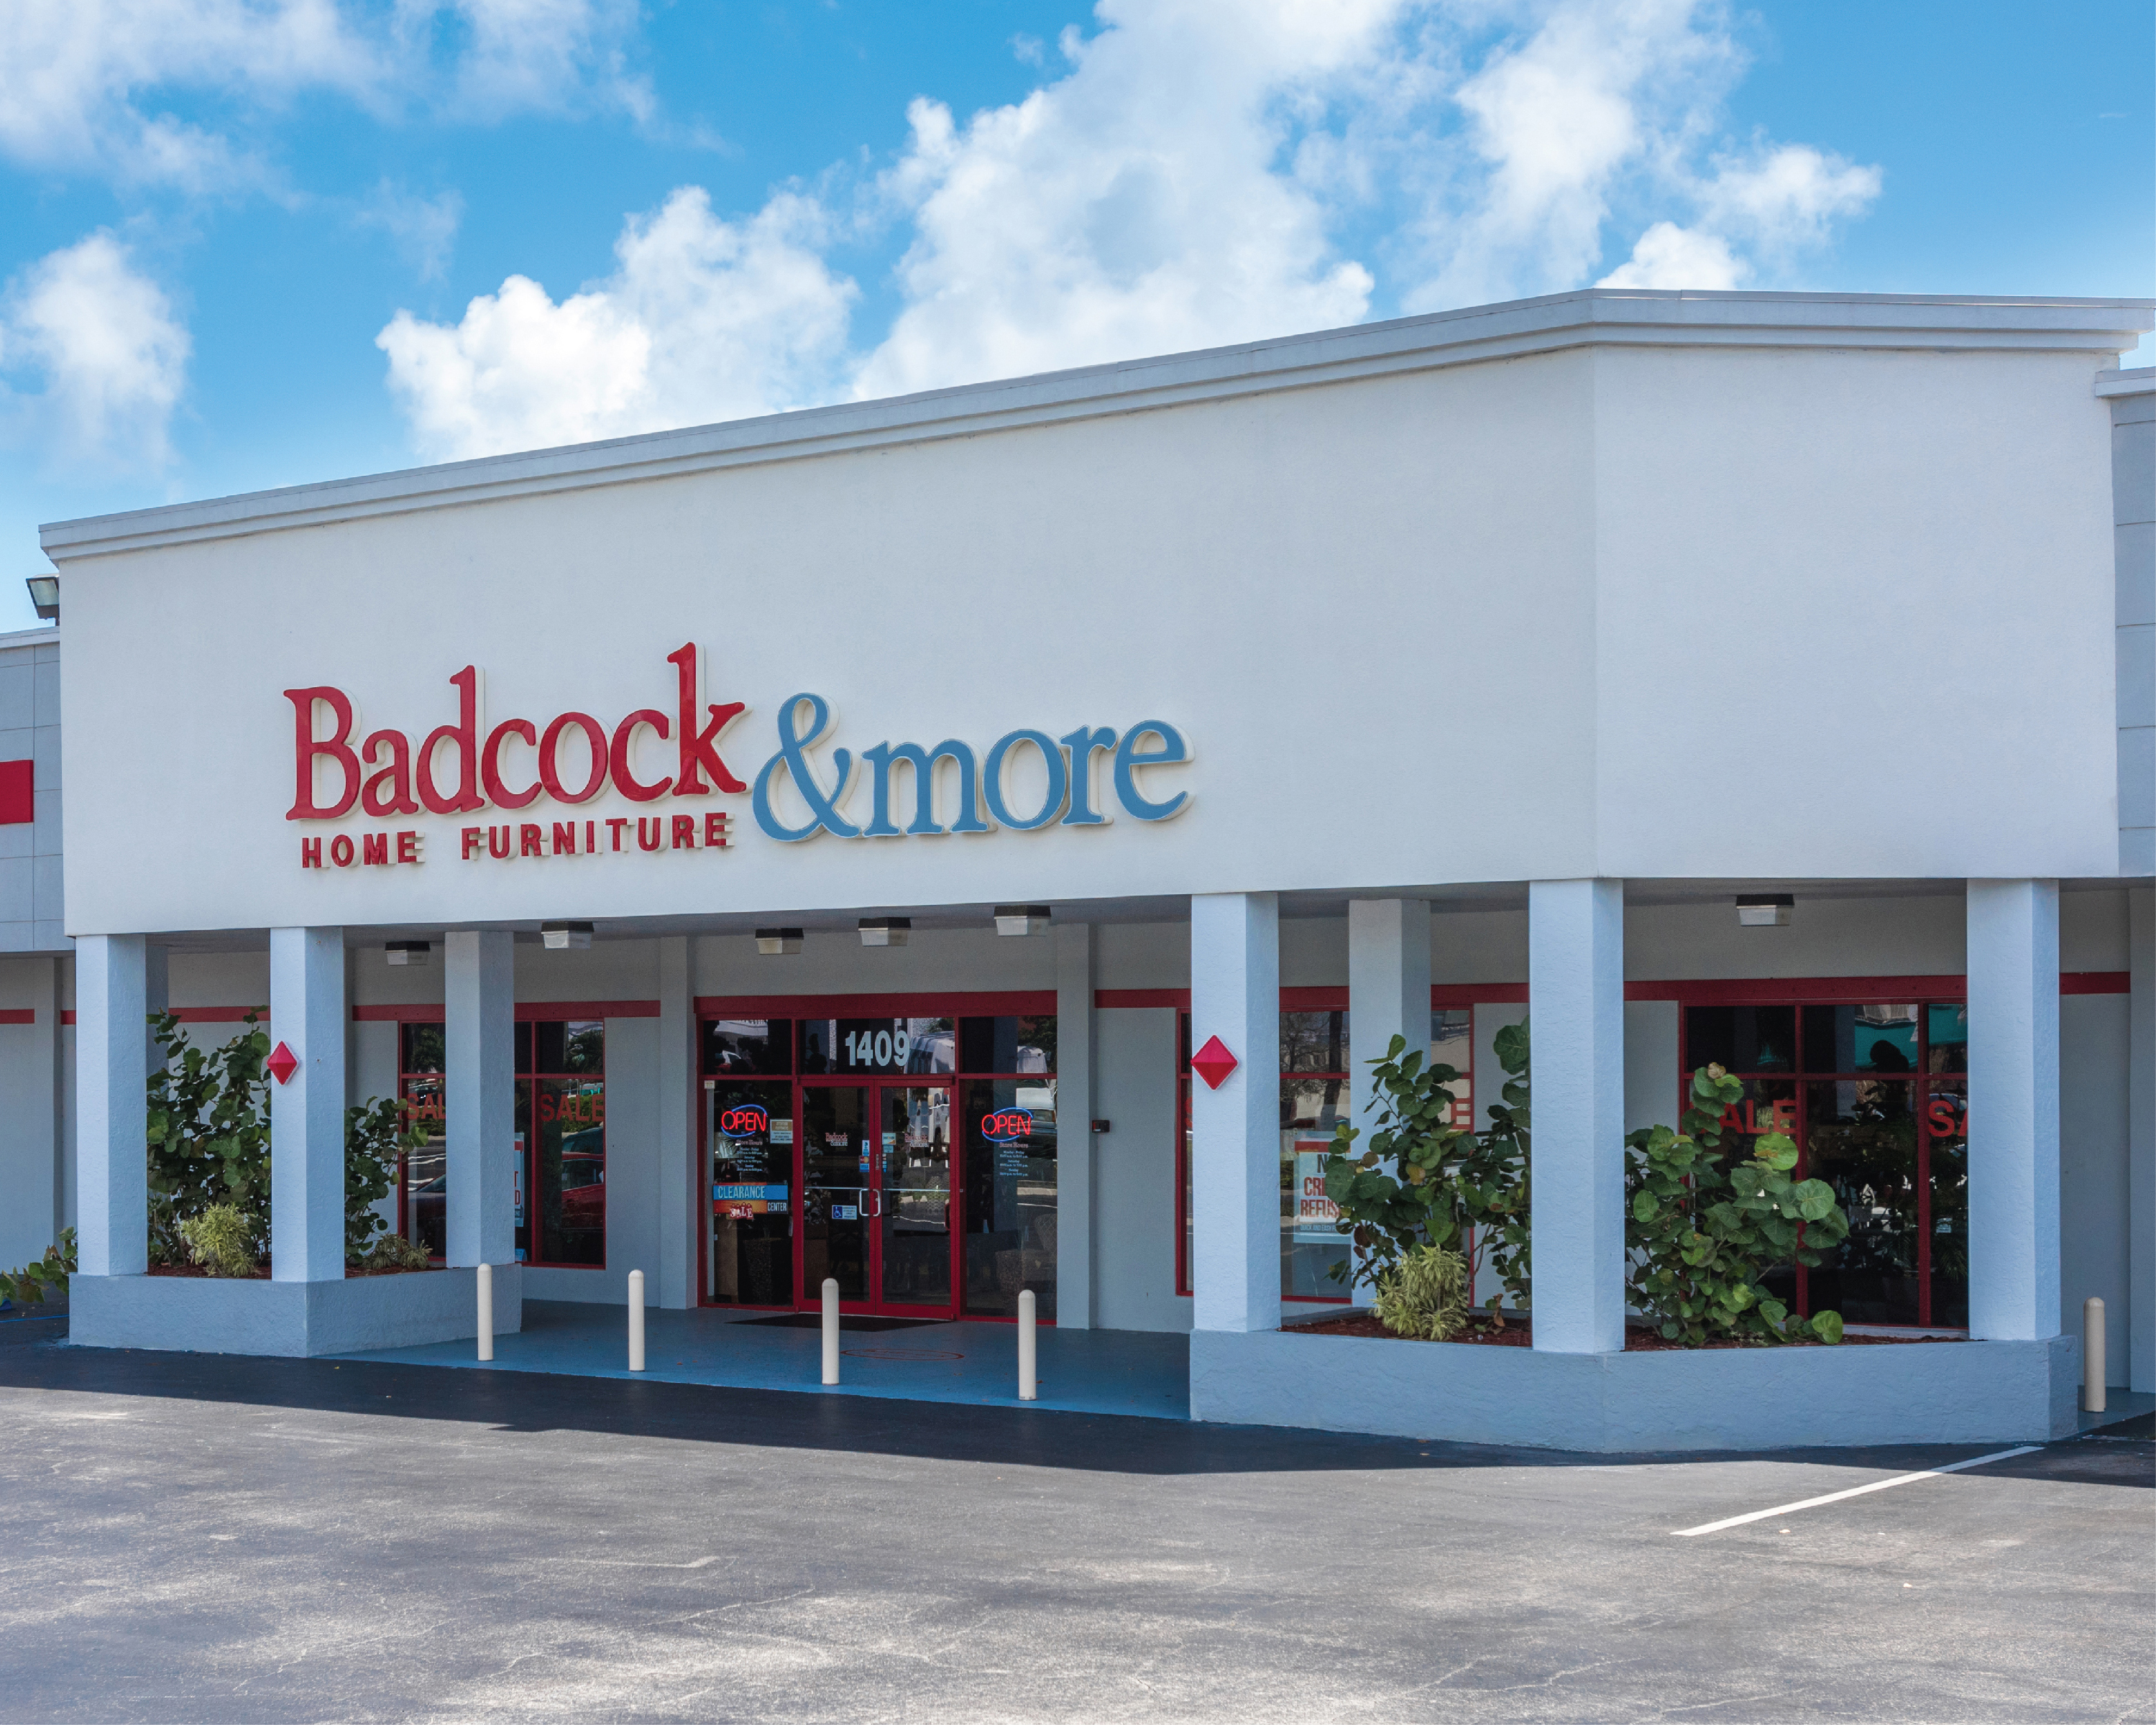 Badcock Home Furniture More 1409 10th St Lake Park Fl 33403